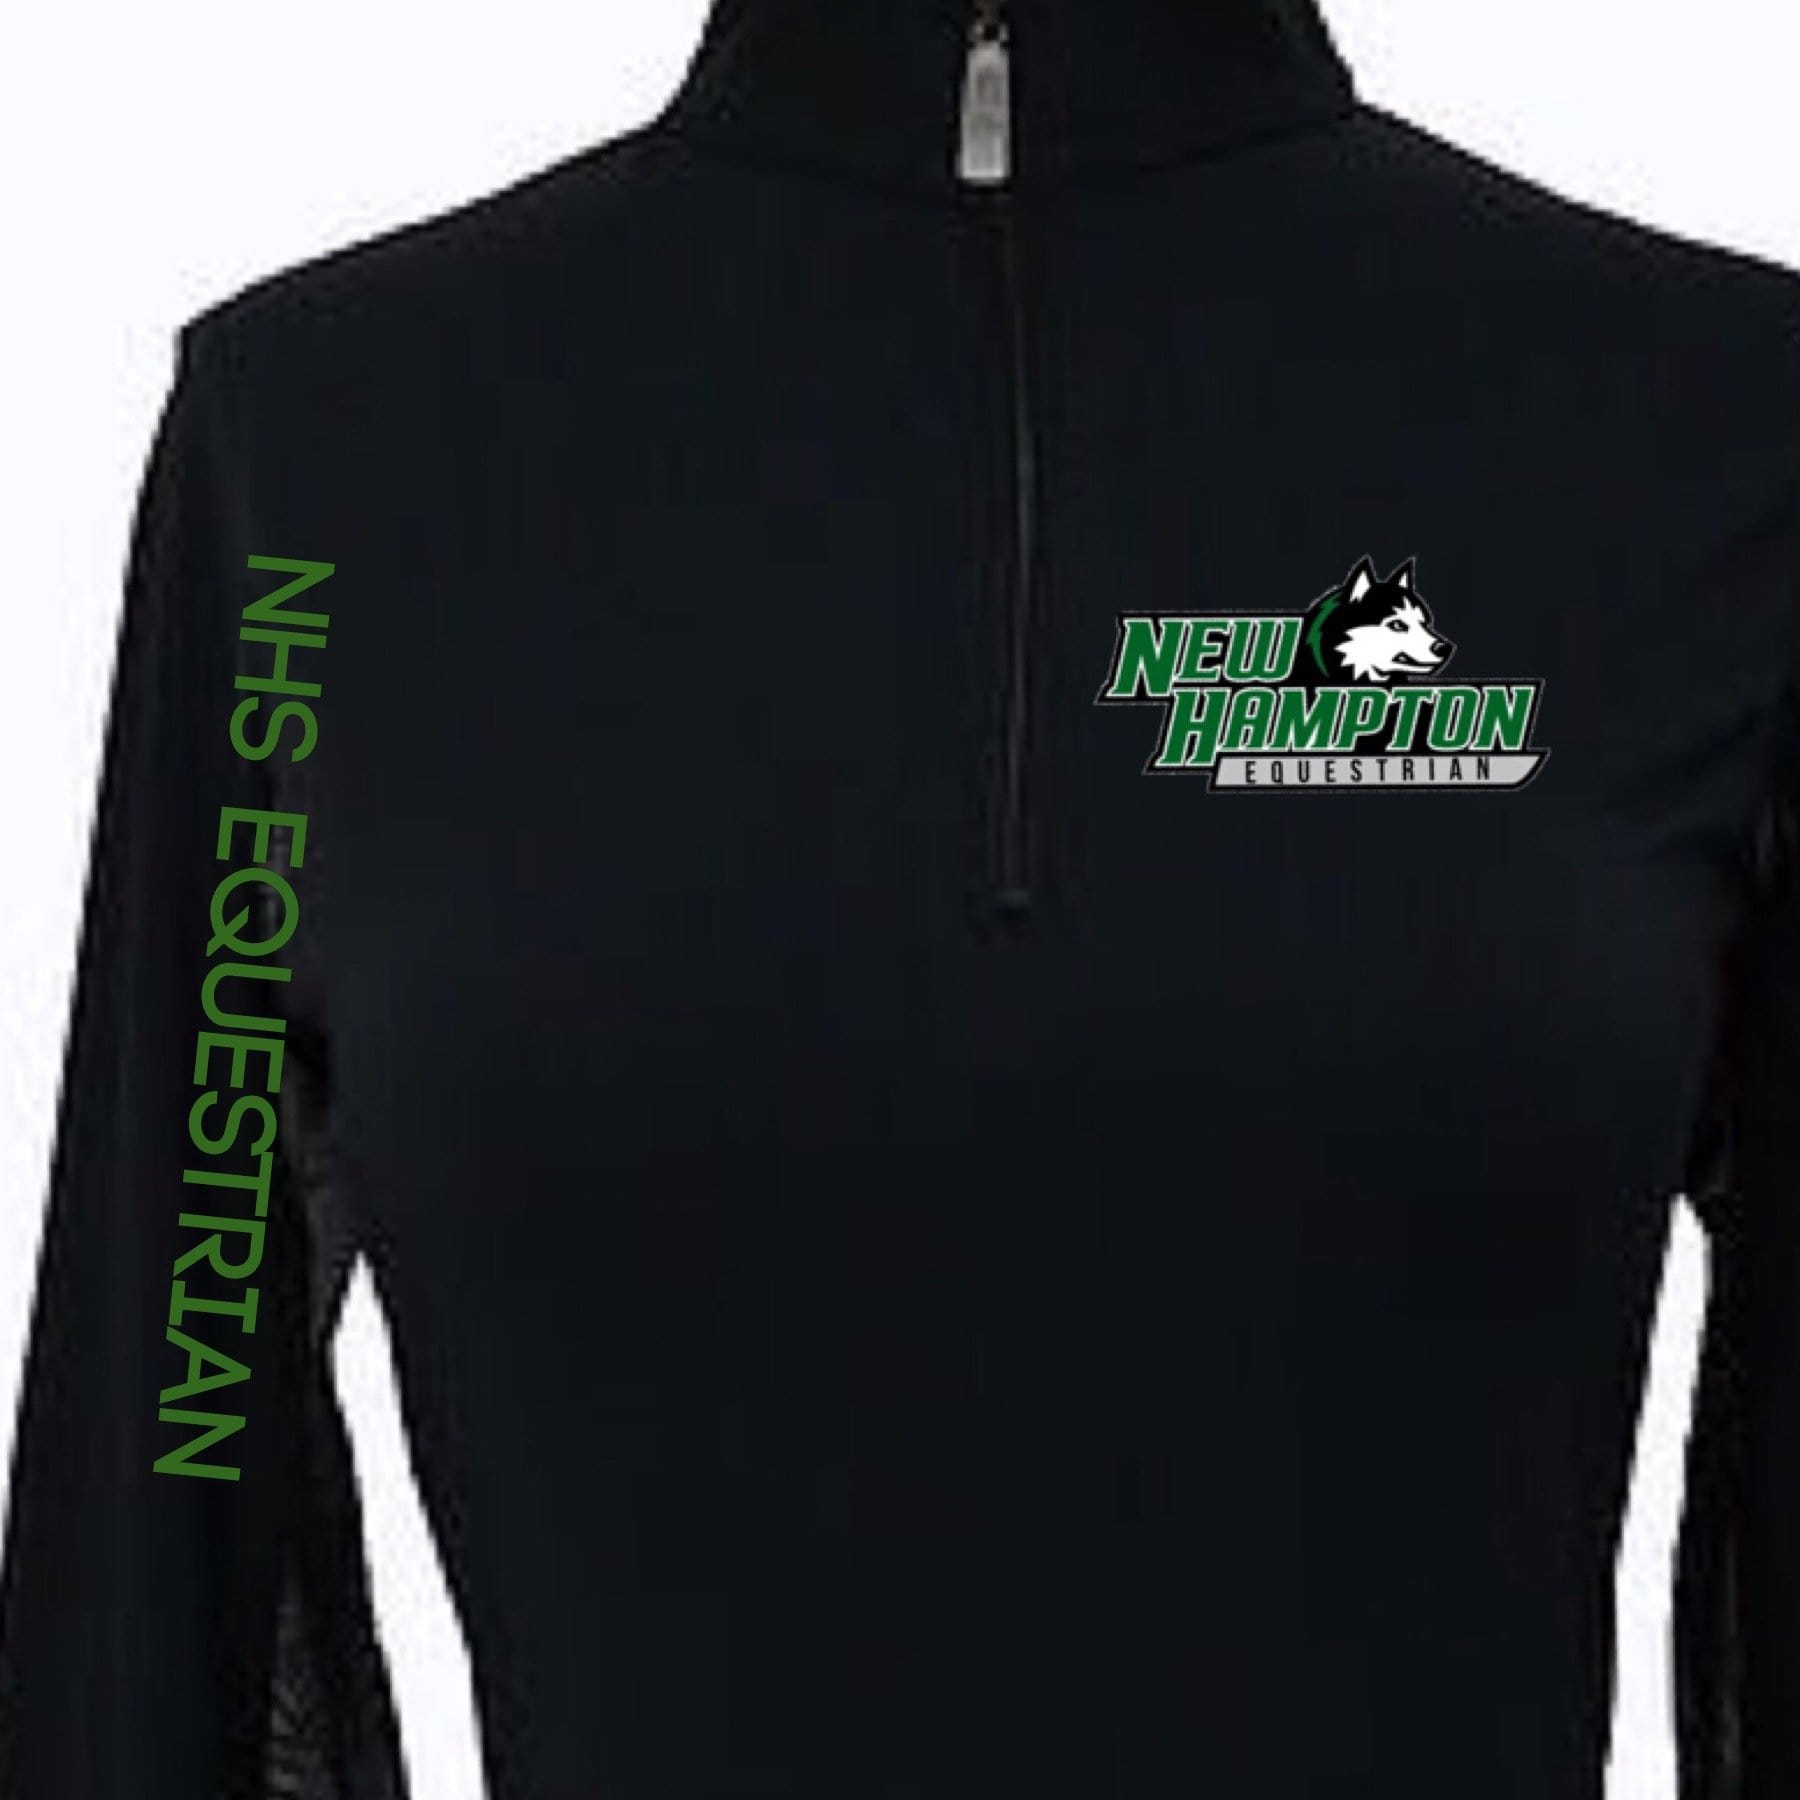 Equestrian Team Apparel Custom Team Shirts XS New Hampton Equestrian equestrian team apparel online tack store mobile tack store custom farm apparel custom show stable clothing equestrian lifestyle horse show clothing riding clothes horses equestrian tack store